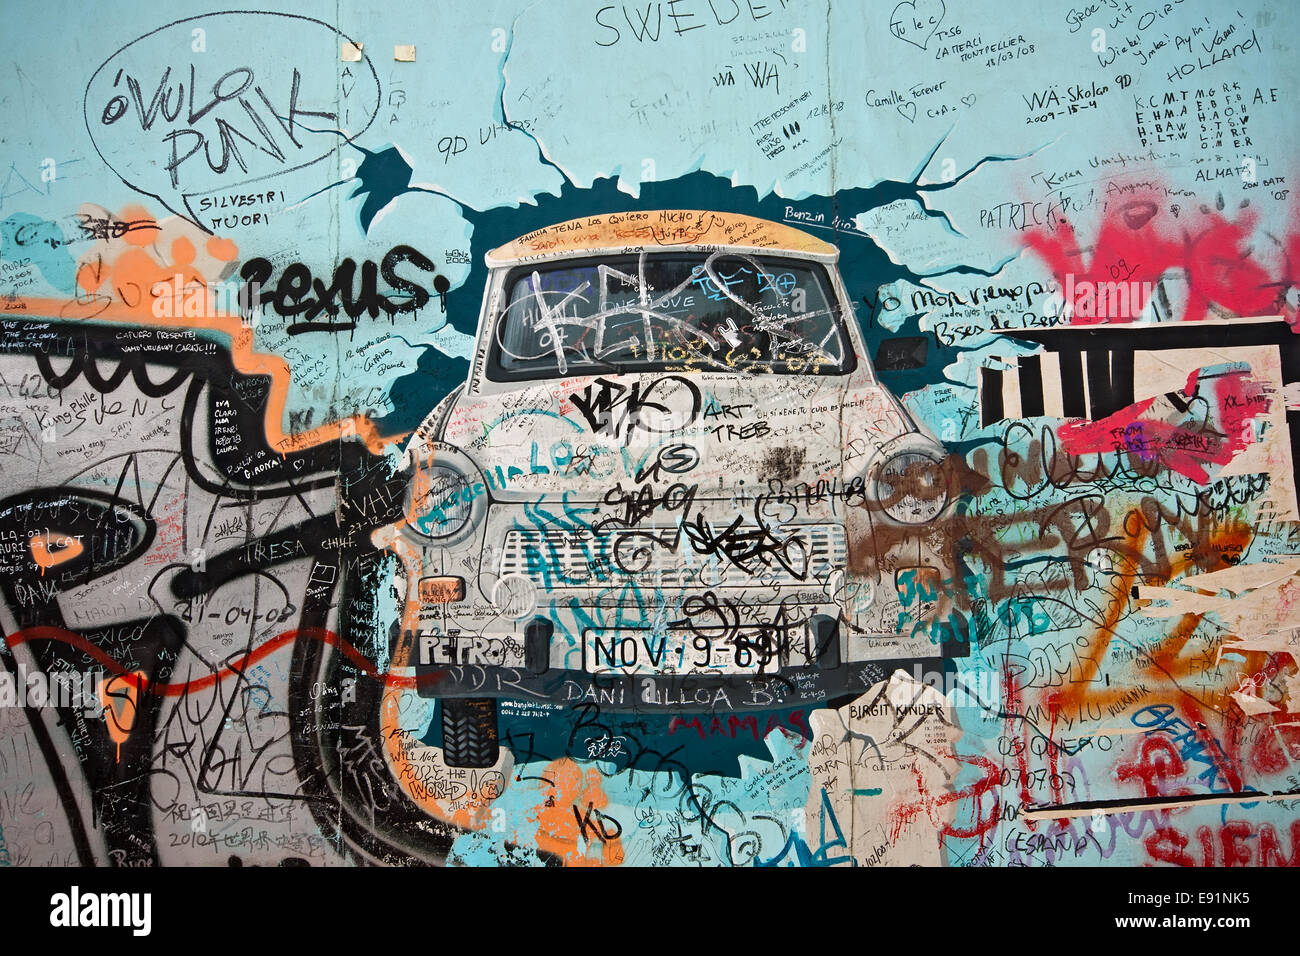 Graffity on the East-Side-Gallery in Berlin - Stock Image